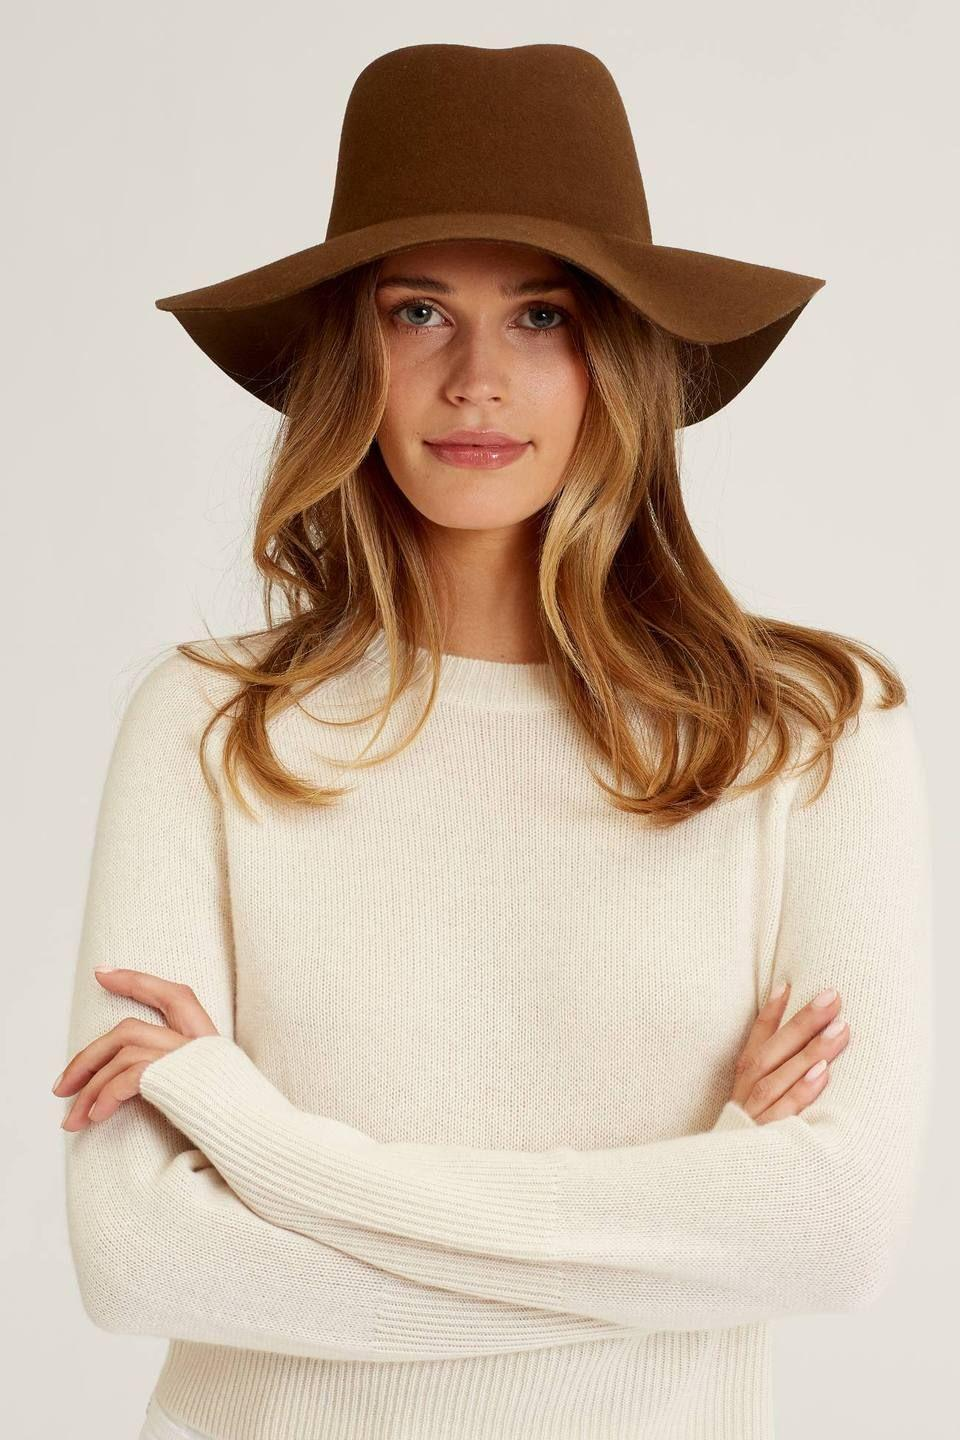 """<p>Naked Cashmere</p><p><strong>$125.00</strong></p><p><a href=""""https://go.redirectingat.com?id=74968X1596630&url=https%3A%2F%2Fwww.nakedcashmere.com%2Fcollections%2Fwomens-beanies-hats%2Fproducts%2Fluna-hat&sref=https%3A%2F%2Fwww.countryliving.com%2Fshopping%2Fg37003543%2Ffall-hats-women%2F"""" rel=""""nofollow noopener"""" target=""""_blank"""" data-ylk=""""slk:SHOP NOW"""" class=""""link rapid-noclick-resp"""">SHOP NOW</a></p><p>If you're into less structure than the classic fedora hat, a wide brim floppy one might be right up your alley! Available in Mocha (shown), Dark Caramel, and Black, this simple hat will be perfect for brunch with girls and fun days in the fall sun.</p>"""